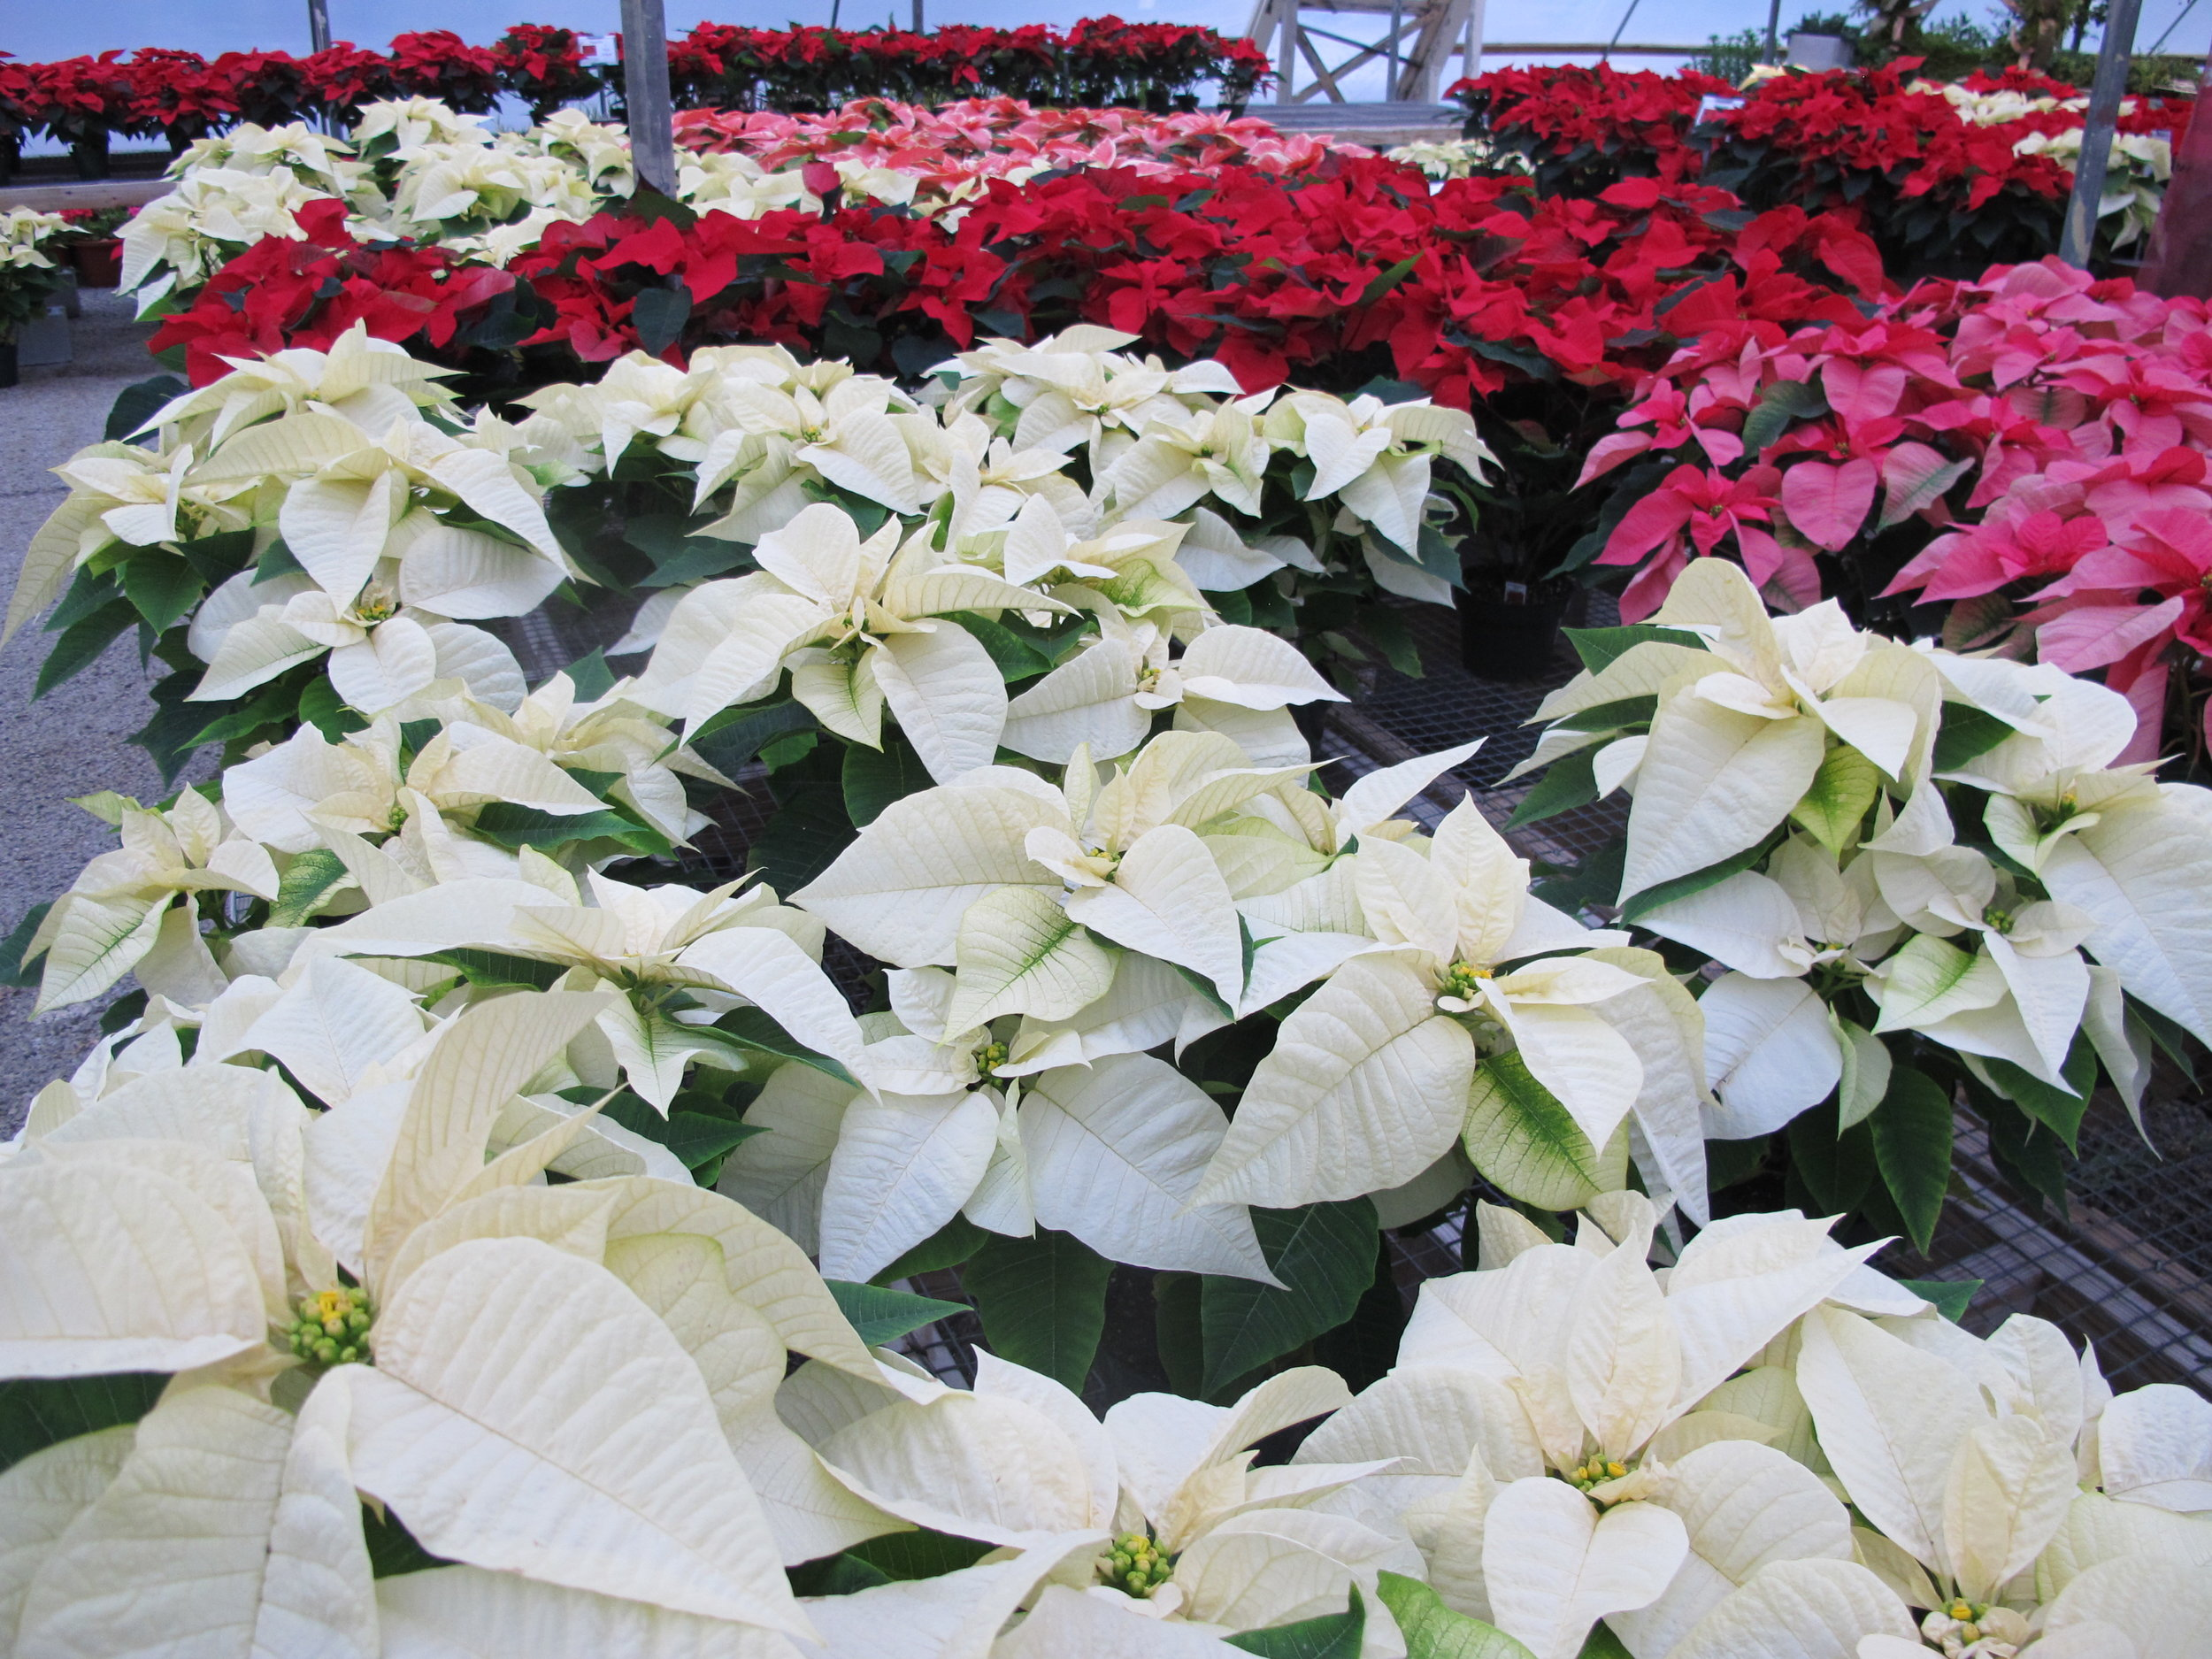 P-Greenhouse of poinsettias.JPG